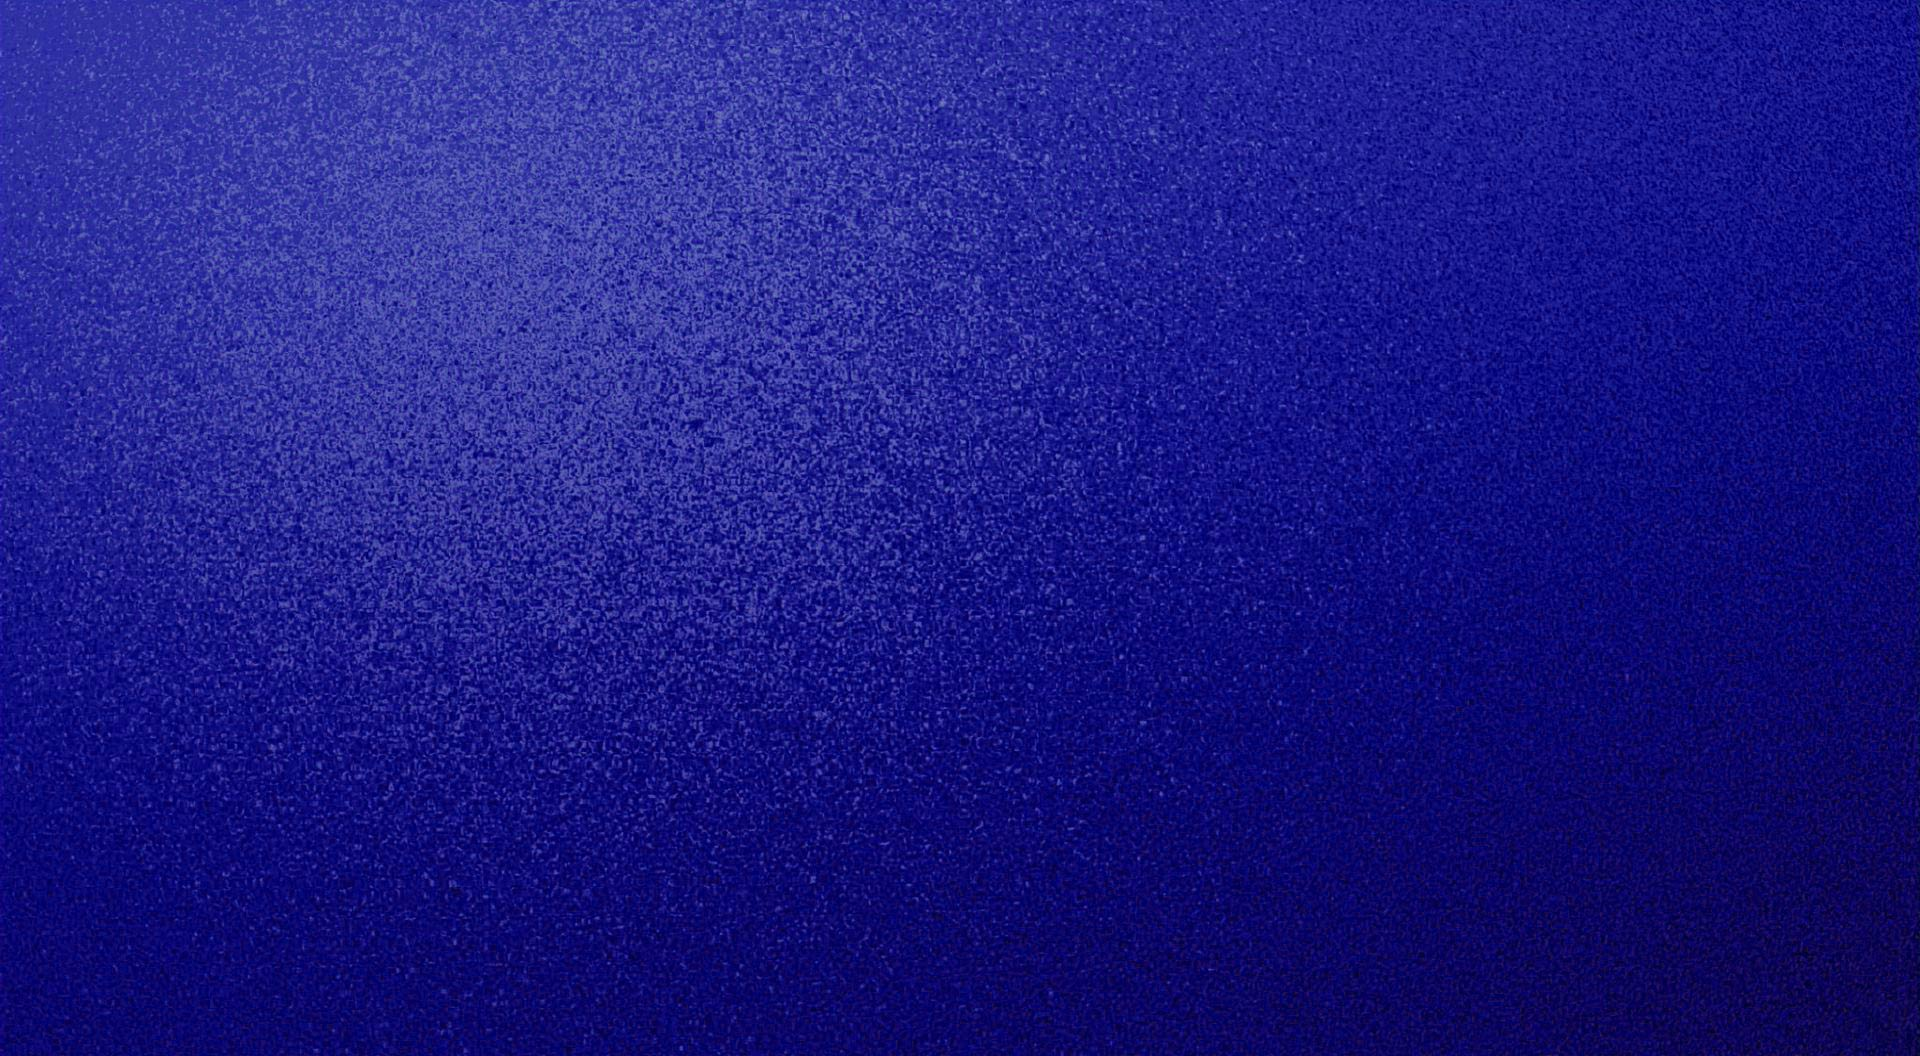 Dark blue backgrounds image wallpaper cave - Dark blue wallpaper hd for android ...